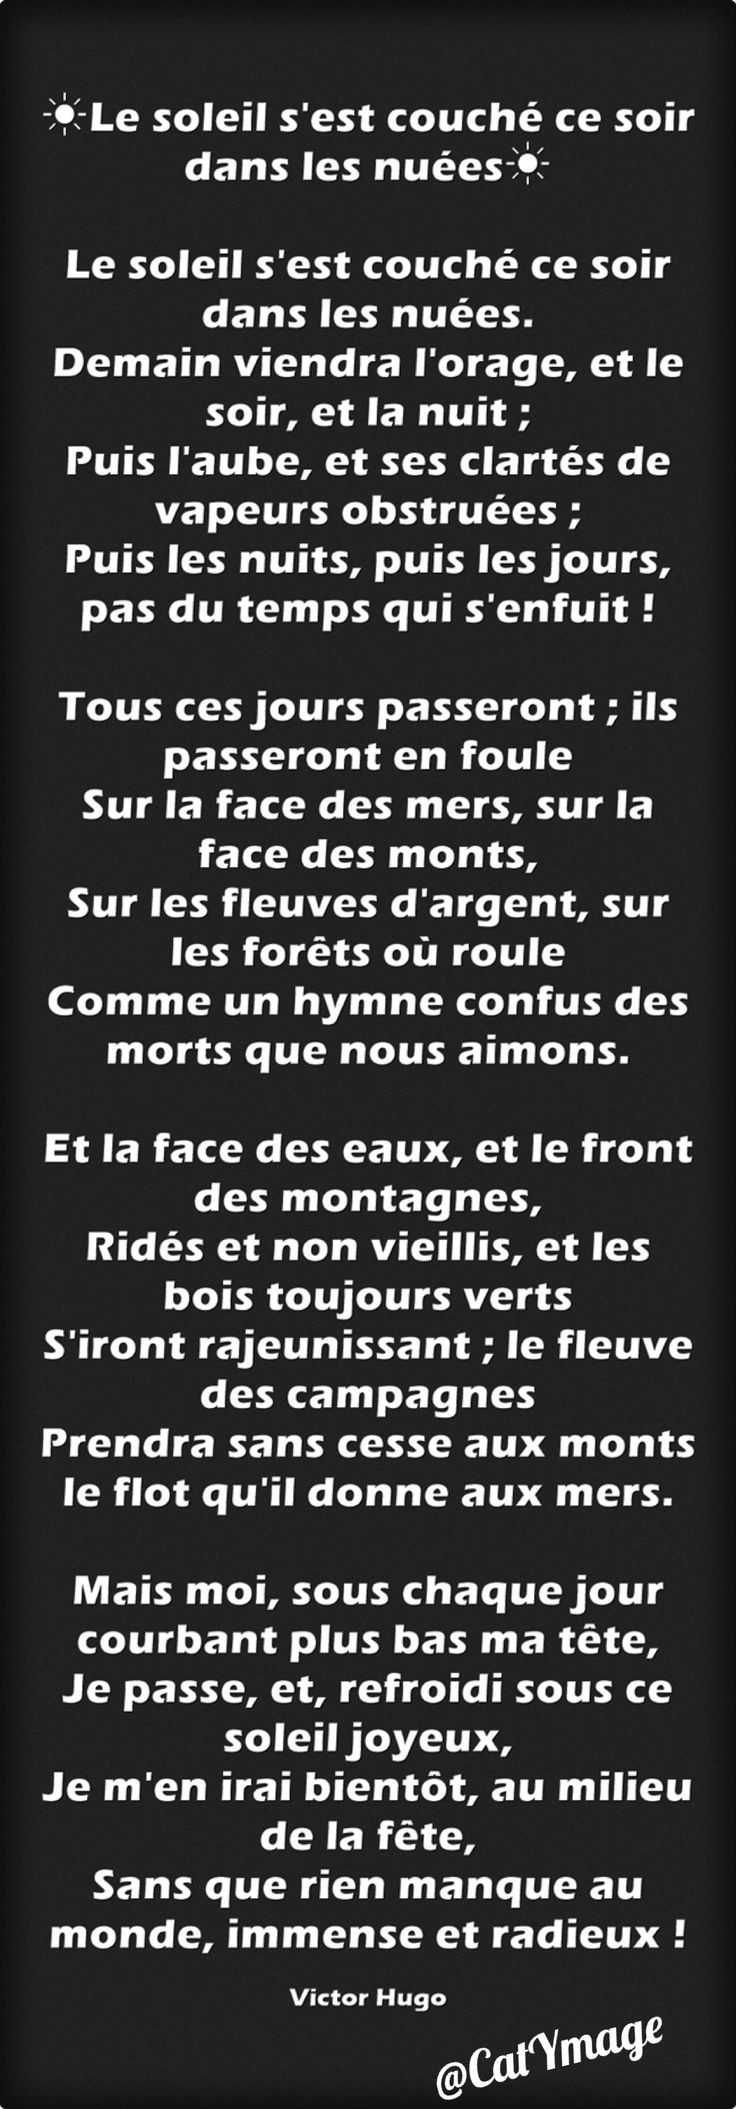 17 best images about po sies on pinterest souvenirs belle and pablo neruda - Soleil couchant victor hugo ...